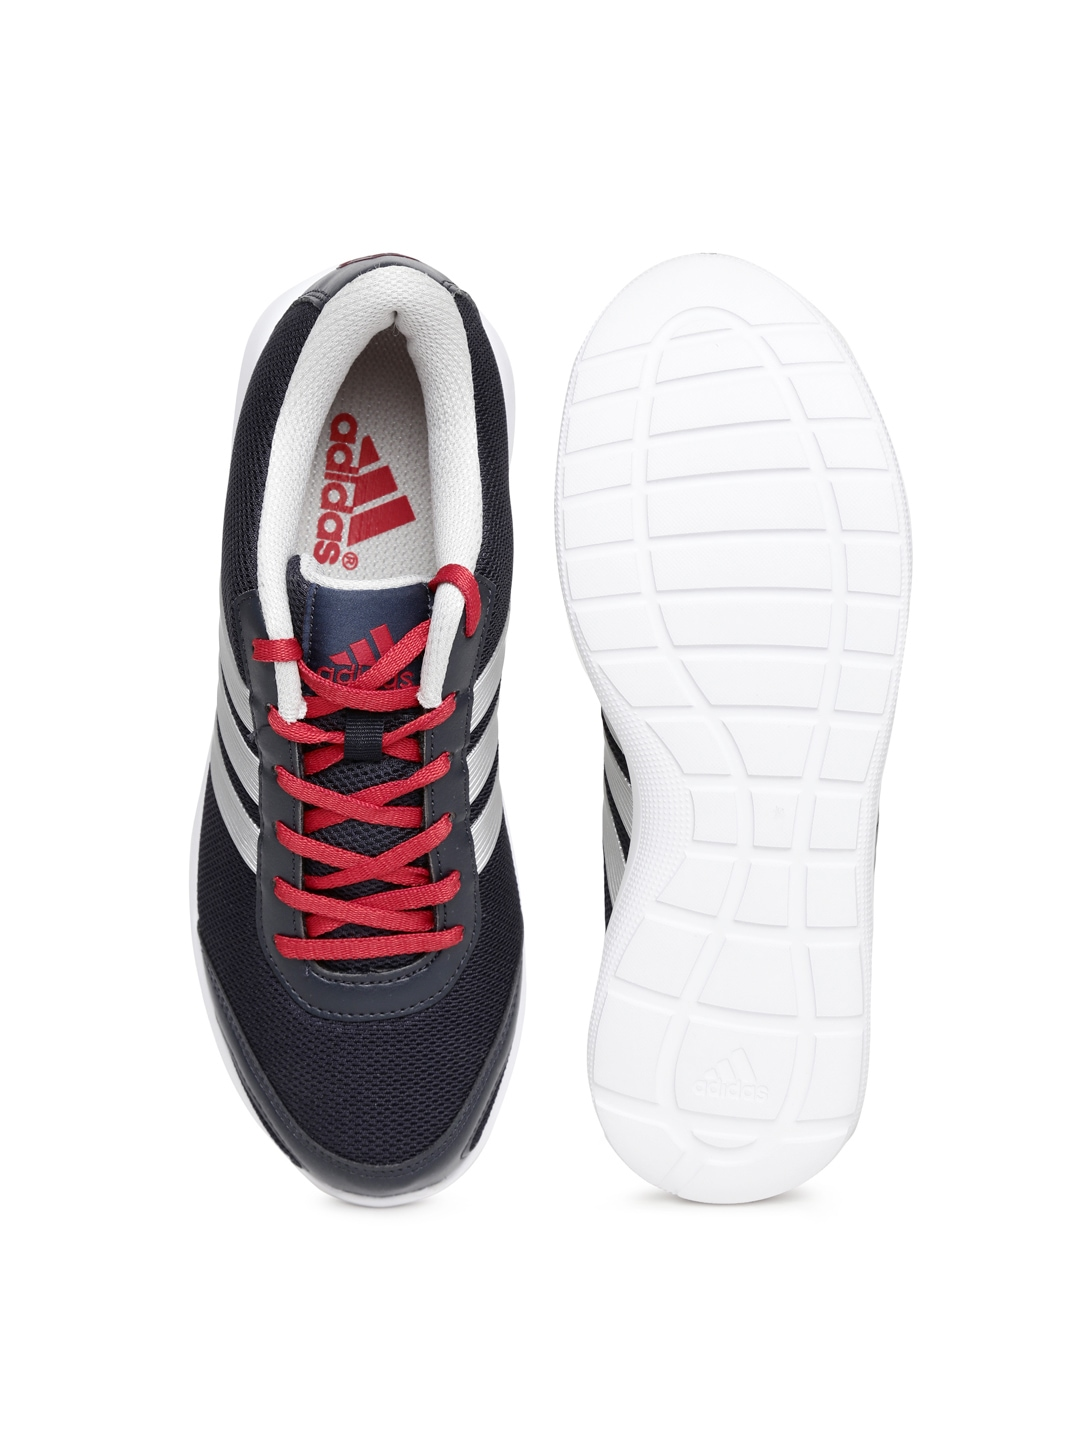 Hellion Navy Blue Running Shoes